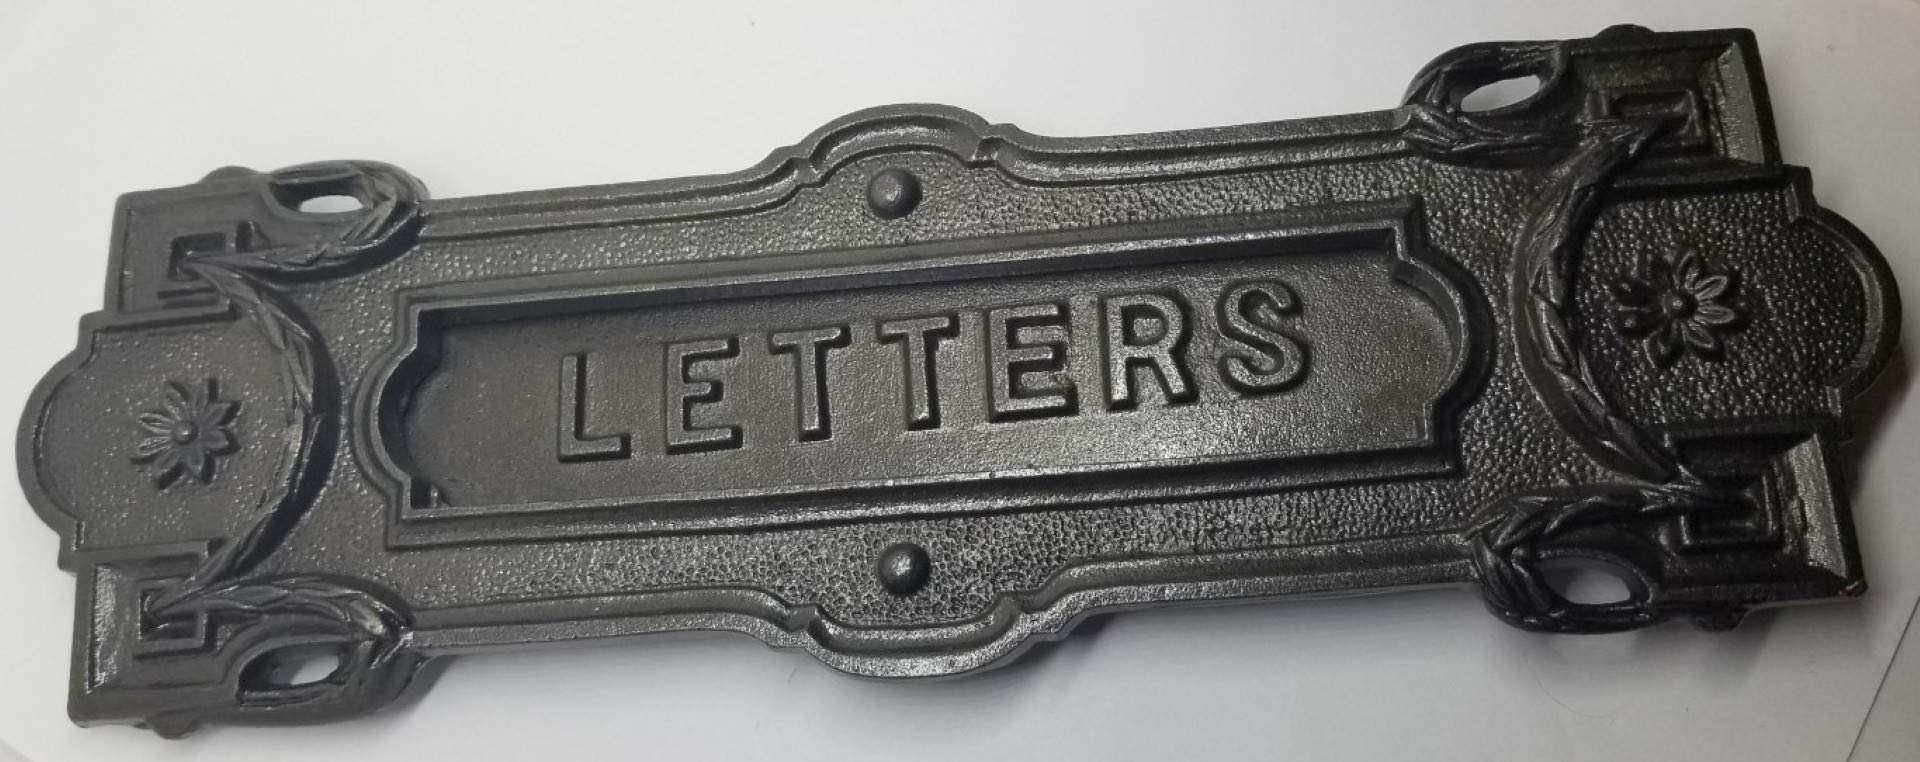 Mailbox Letter Slot Swinging Door Wall Mounted cast Iron neo Classical Antique Vintage Old Mail Postal